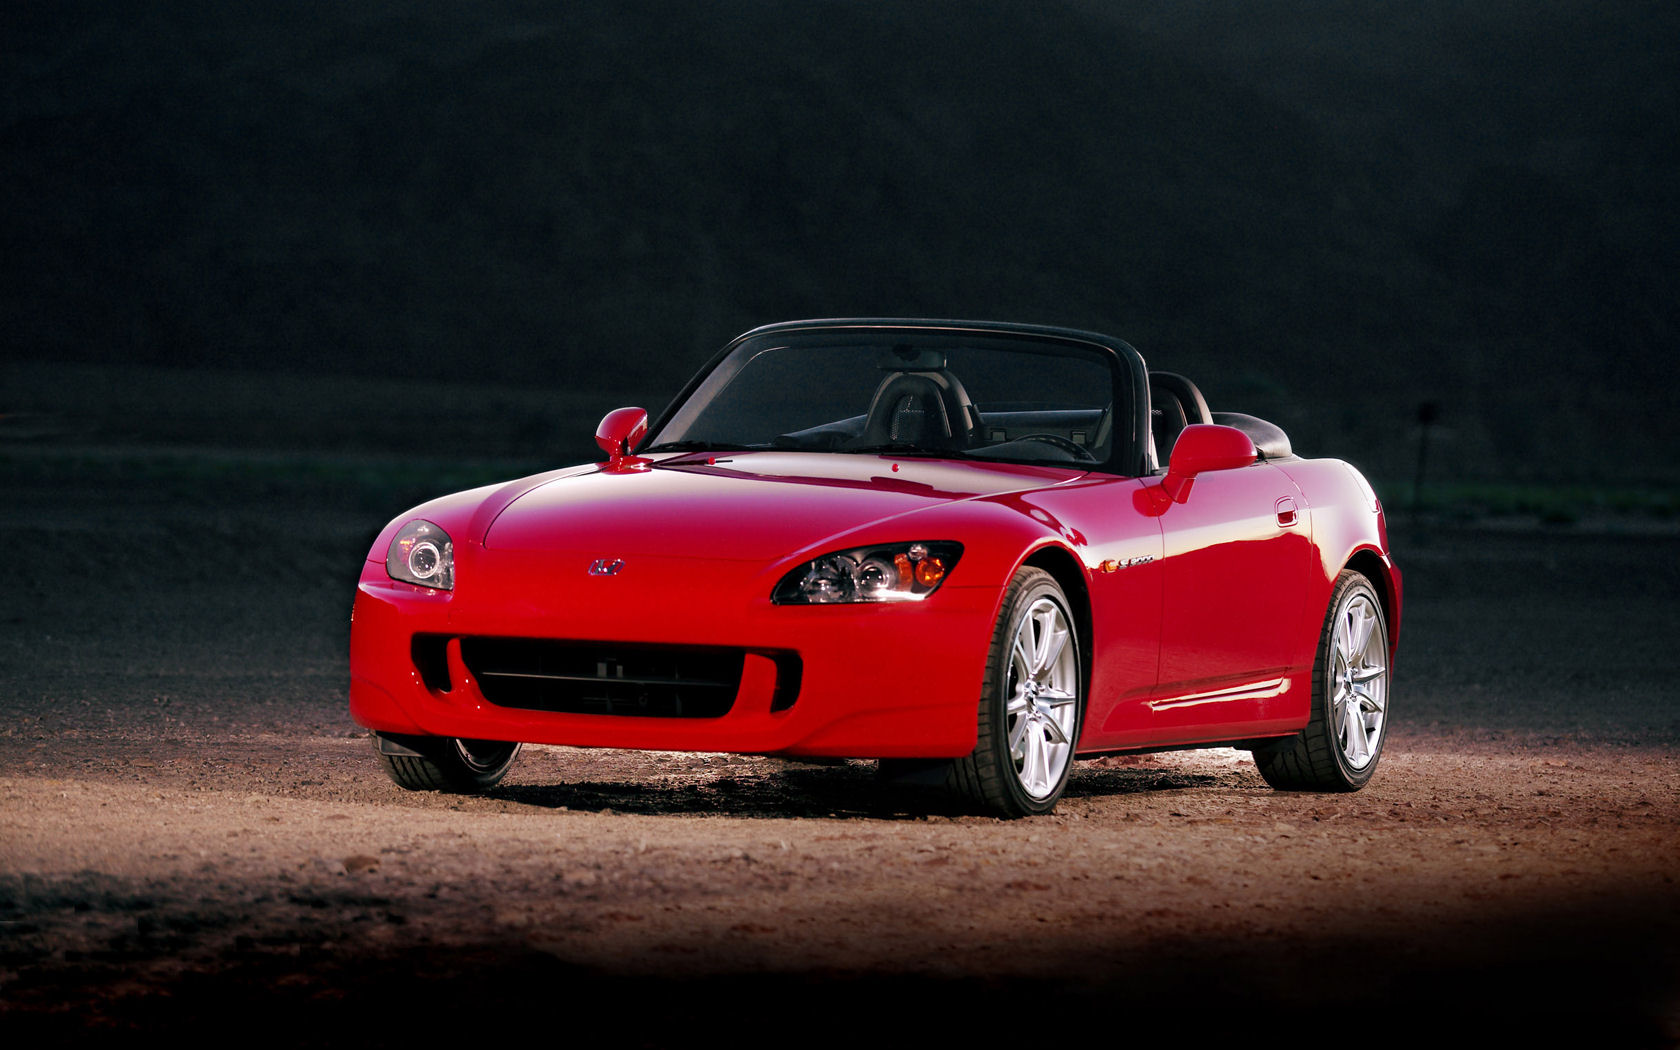 Honda S2000 Roadster, CR - Free Widescreen Wallpaper ...